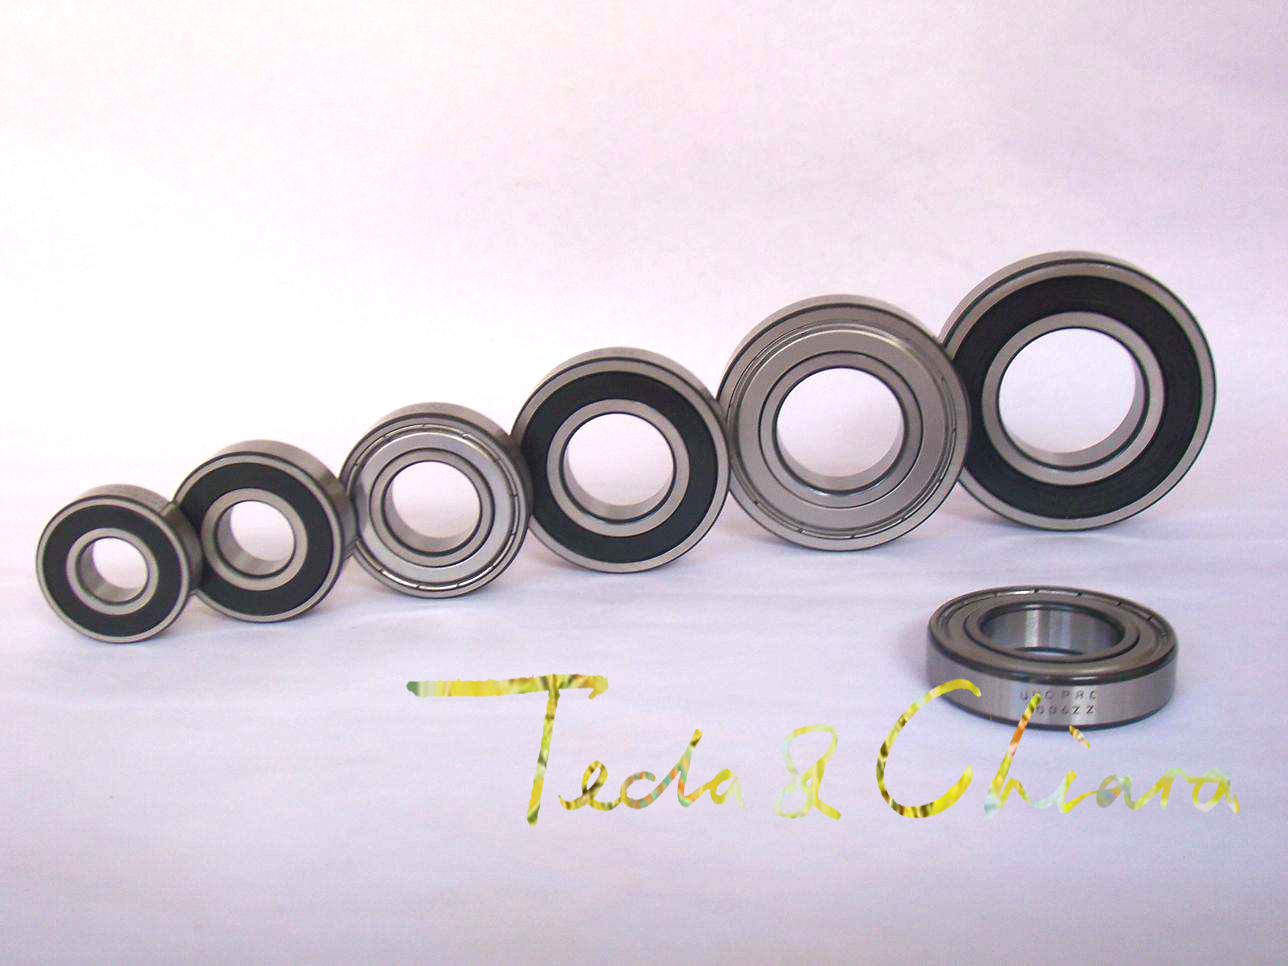 699 699ZZ 699RS 699-2Z 699Z 699-2RS ZZ RS RZ 2RZ Deep Groove Ball Bearings 9 x 20 x 6mm High Quality free shipping 25x47x12mm deep groove ball bearings 6005 zz 2z 6005zz bearing 6005zz 6005 2rs